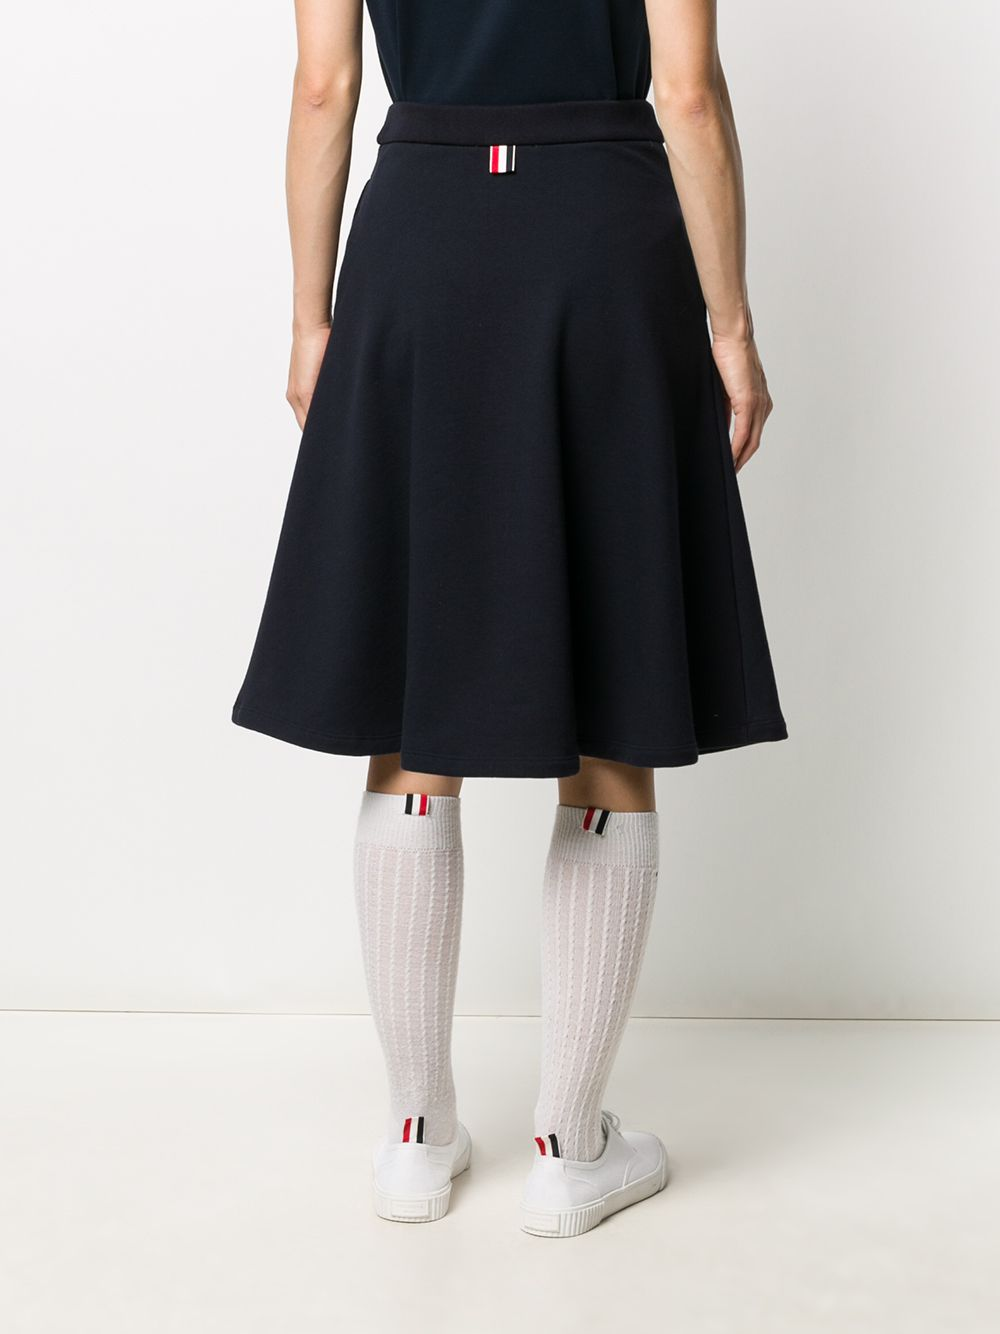 THOM BROWNE WOMEN FLARED SKIRT W/ PRINTED RWB DIAGONAL STRIPE IN CLASSIC LOOPBACK